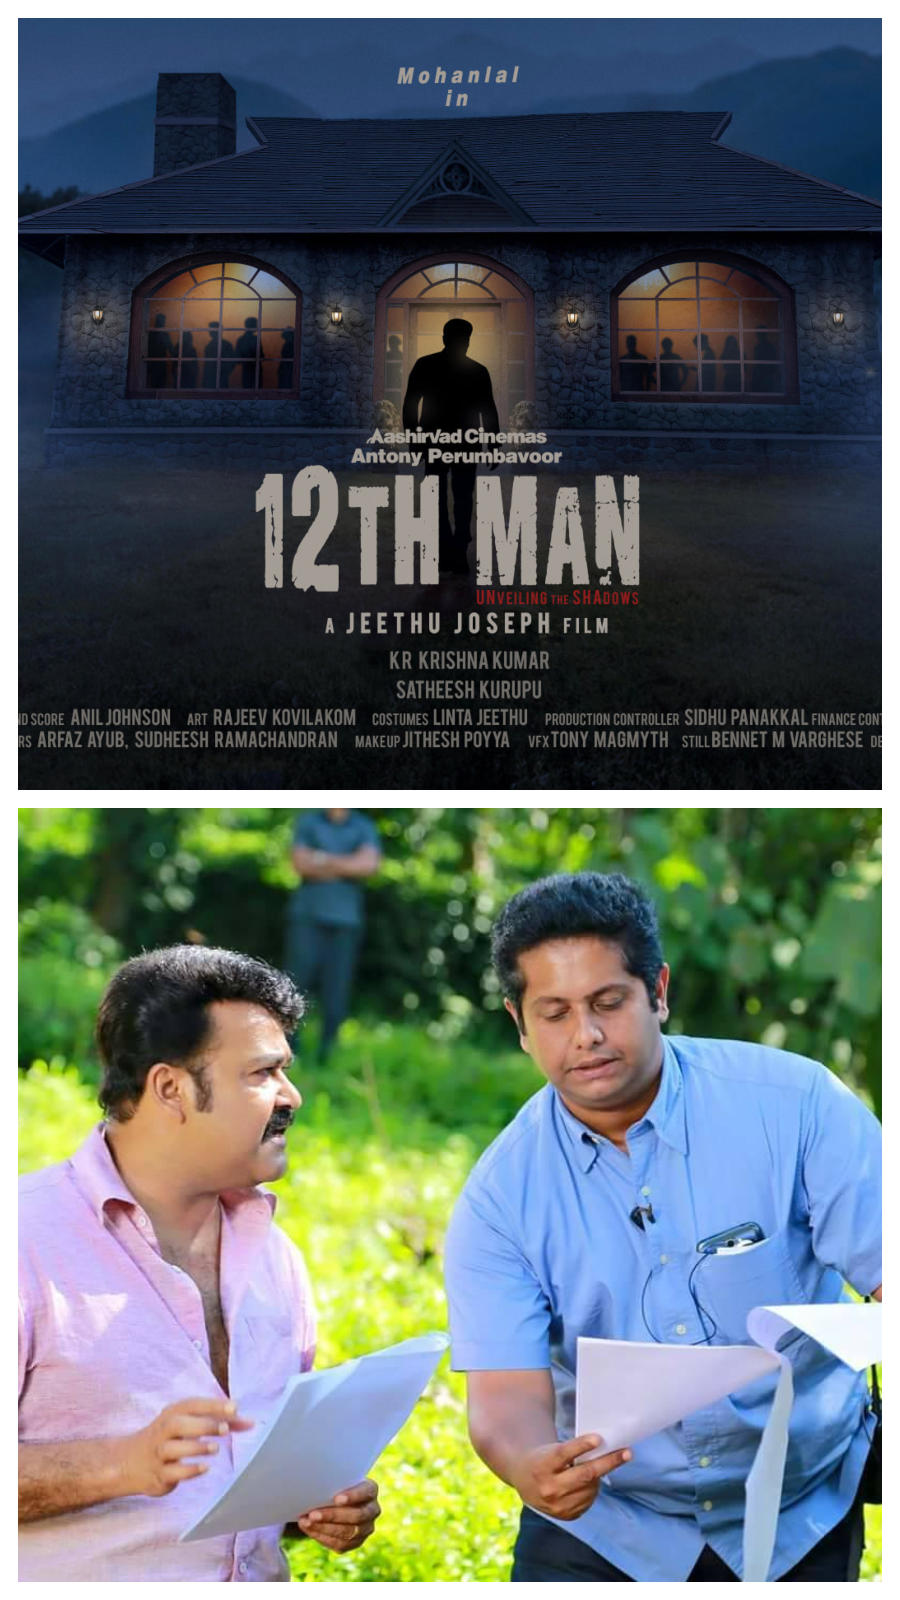 12th Man: Meet the cast and crew